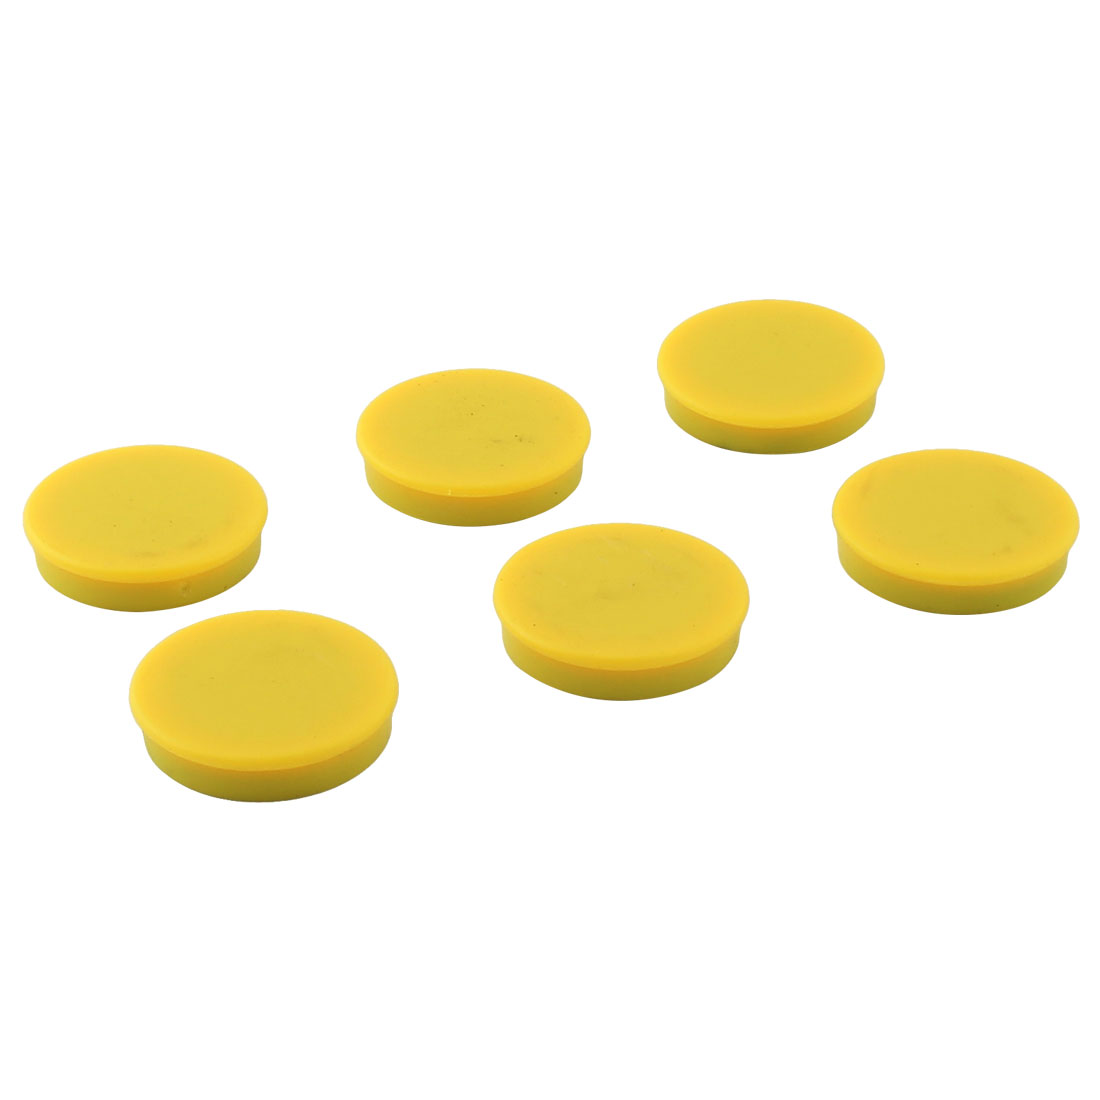 Home Plastic Shell Round Shaped Fridge Magnetic Sticker Yellow 6pcs